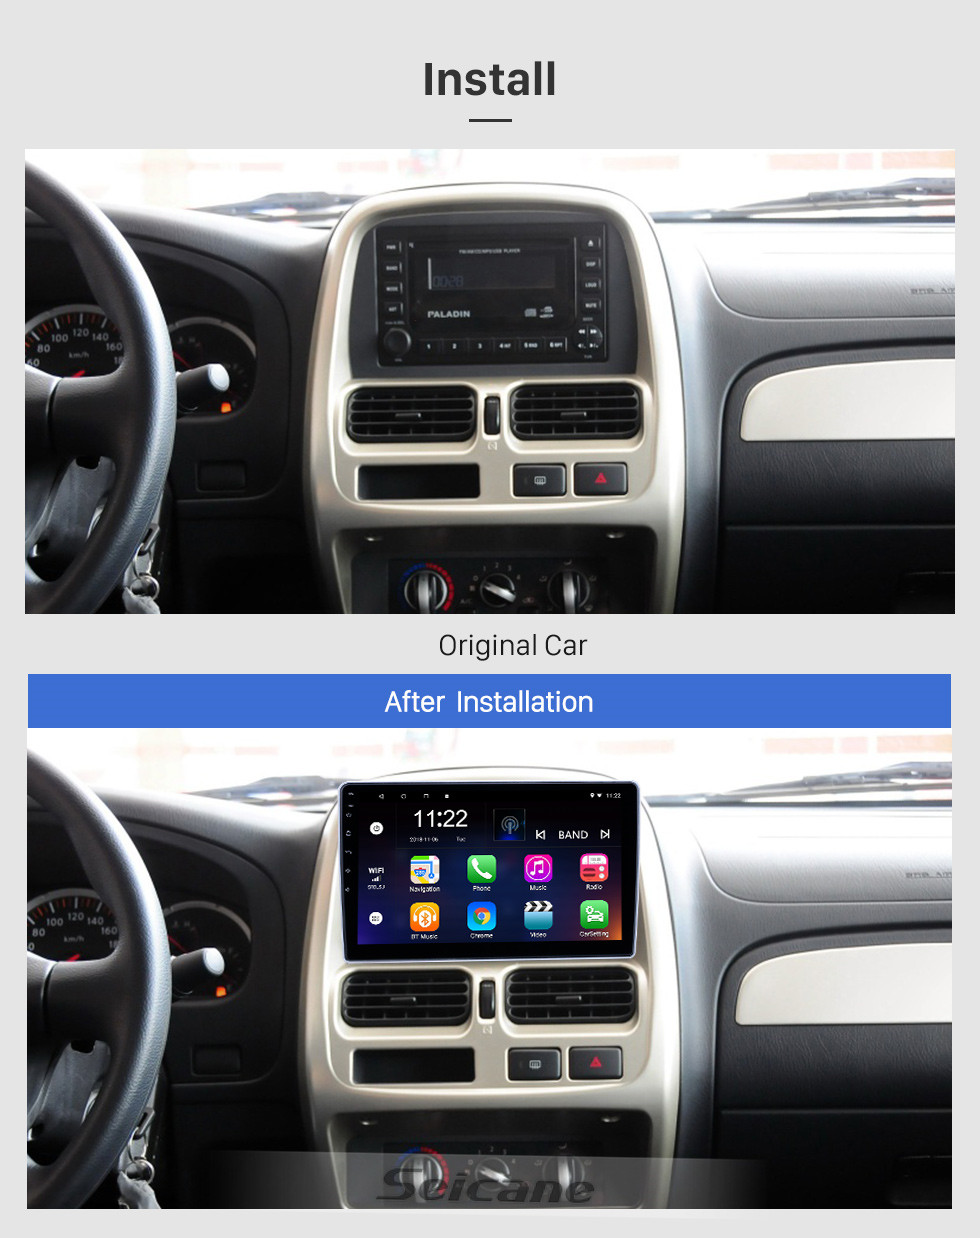 Seicane 10.1 inch Android 10.0 GPS Navigation Radio for 2004-2013 Nissan Paladin With HD Touchscreen Bluetooth support Carplay Rear camera